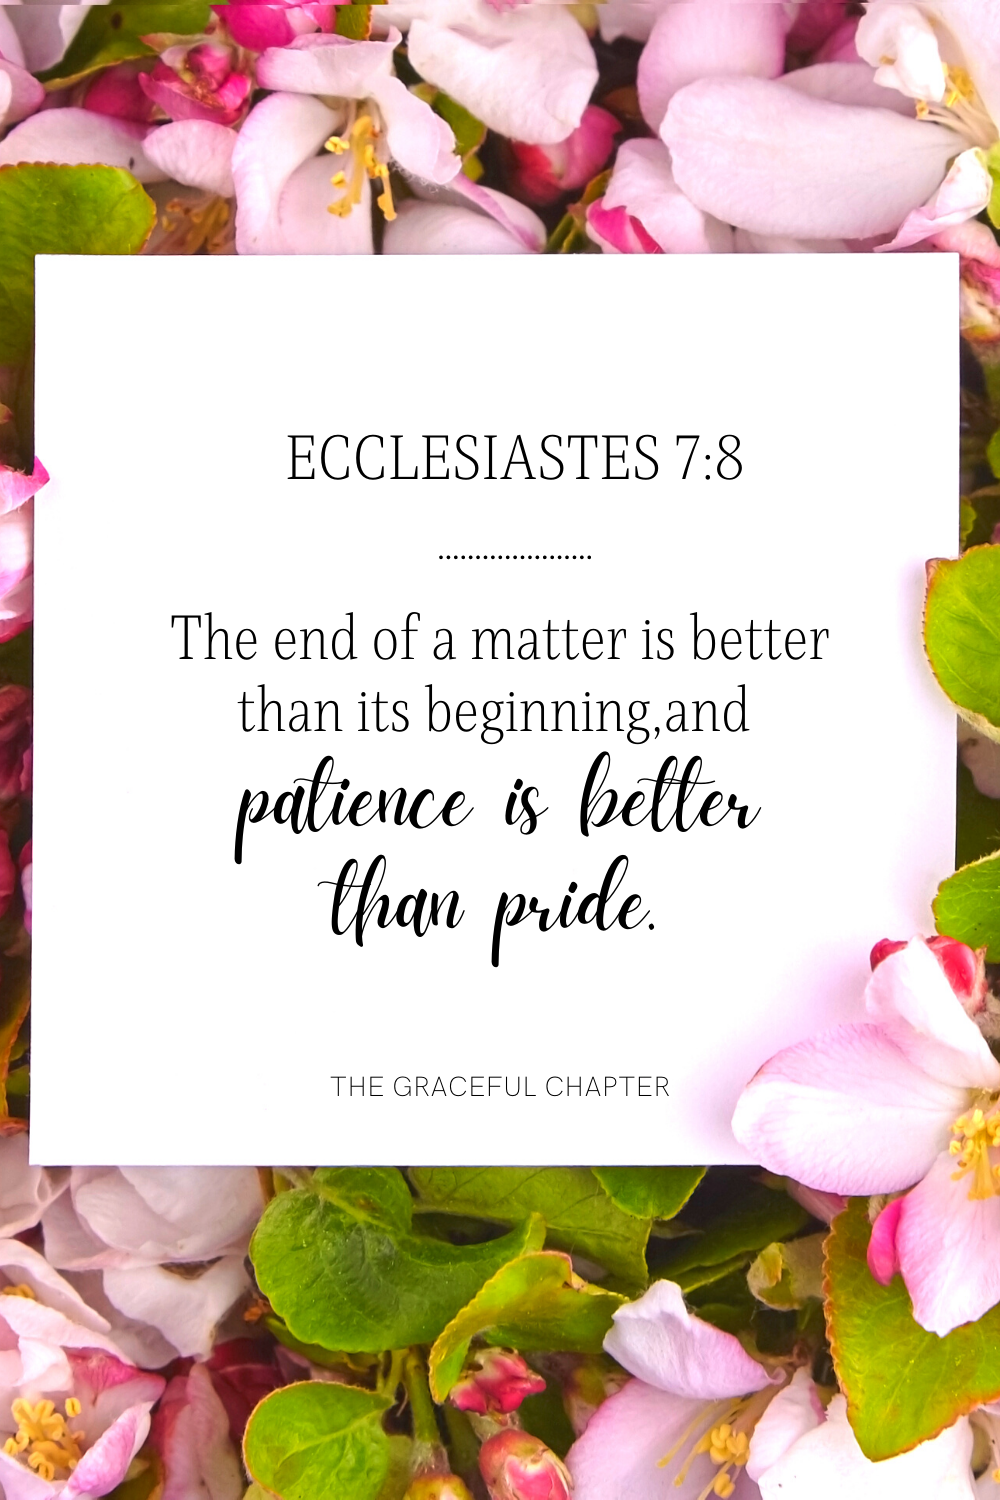 The end of a matter is better than its beginning, and patience is better than pride. Ecclesiastes 7:8